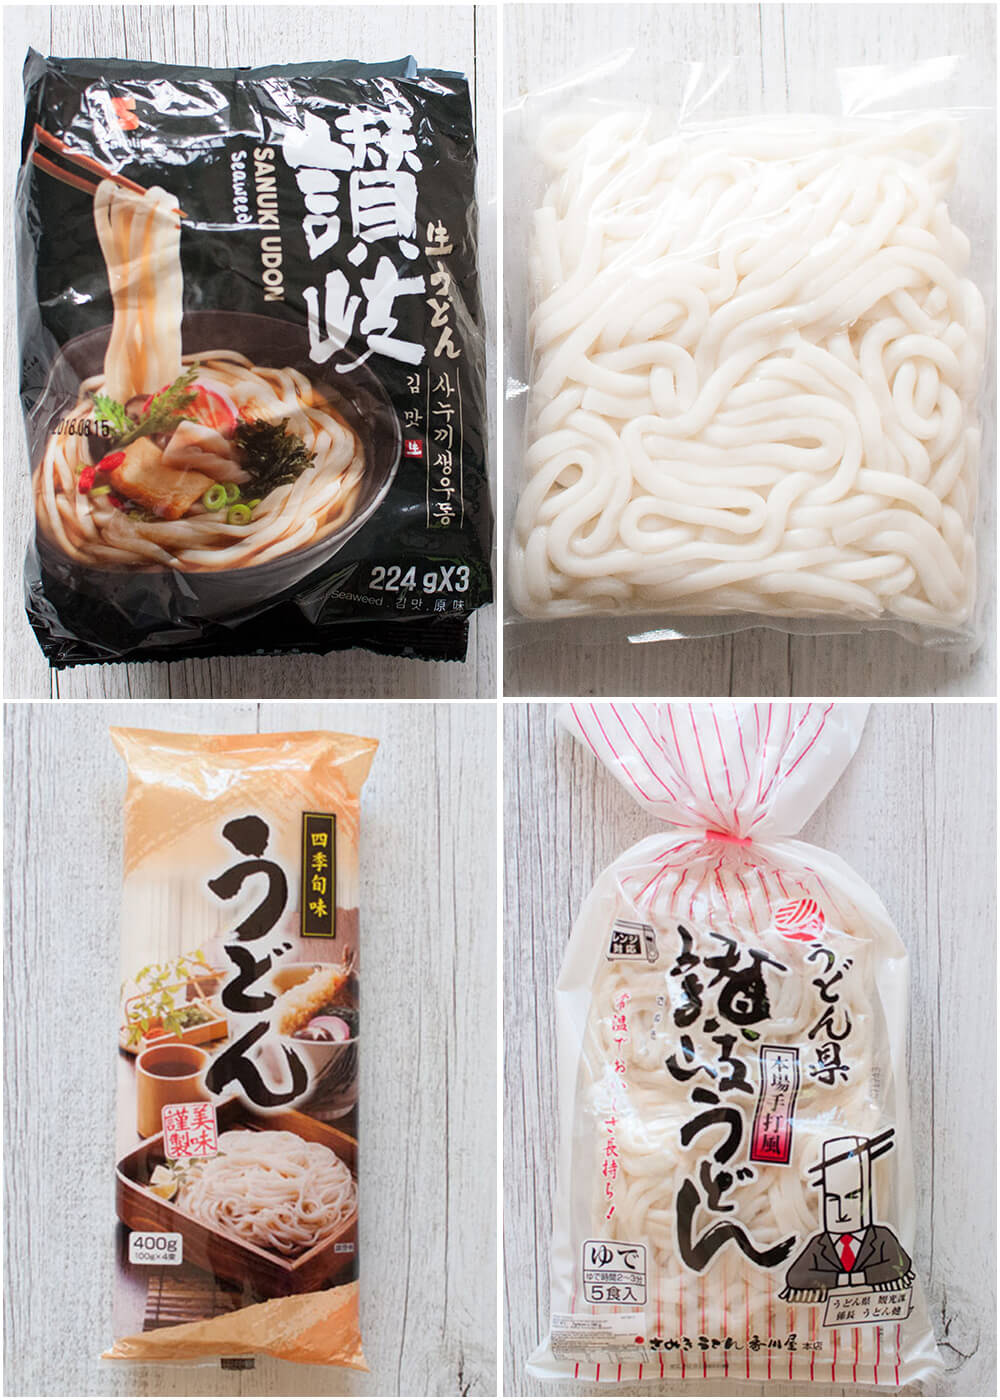 Varieties of udon noodles